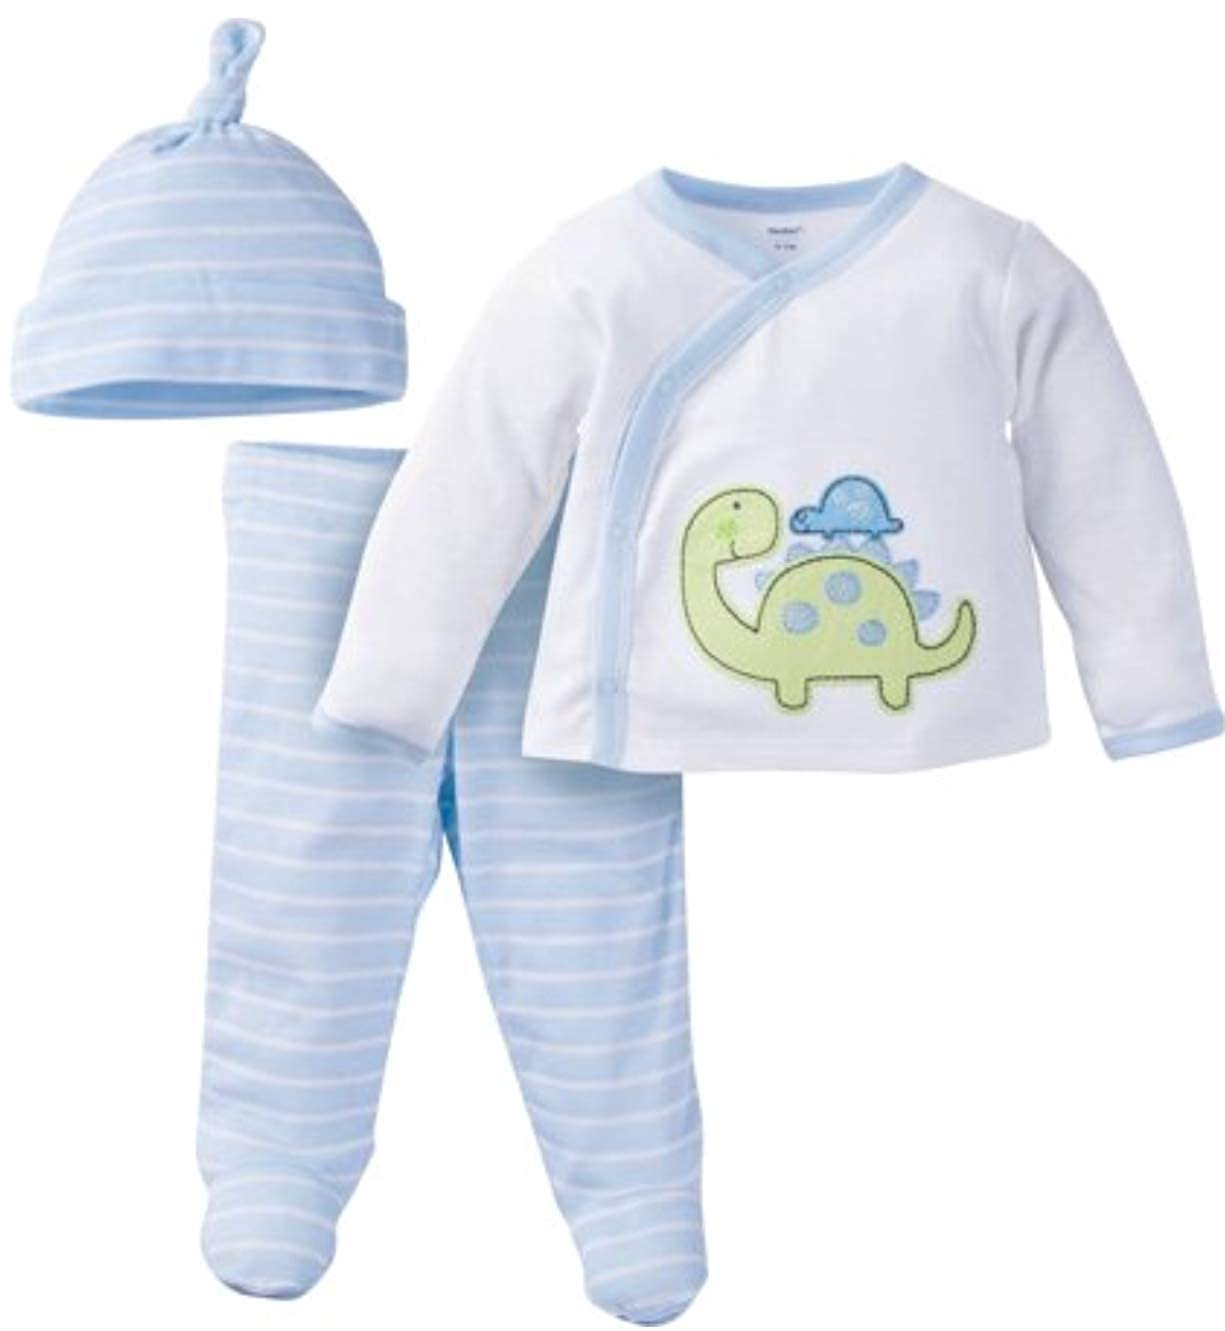 "Gerber Newborn Baby Boy Layette Set /""Take Me Home/"" Outfit"